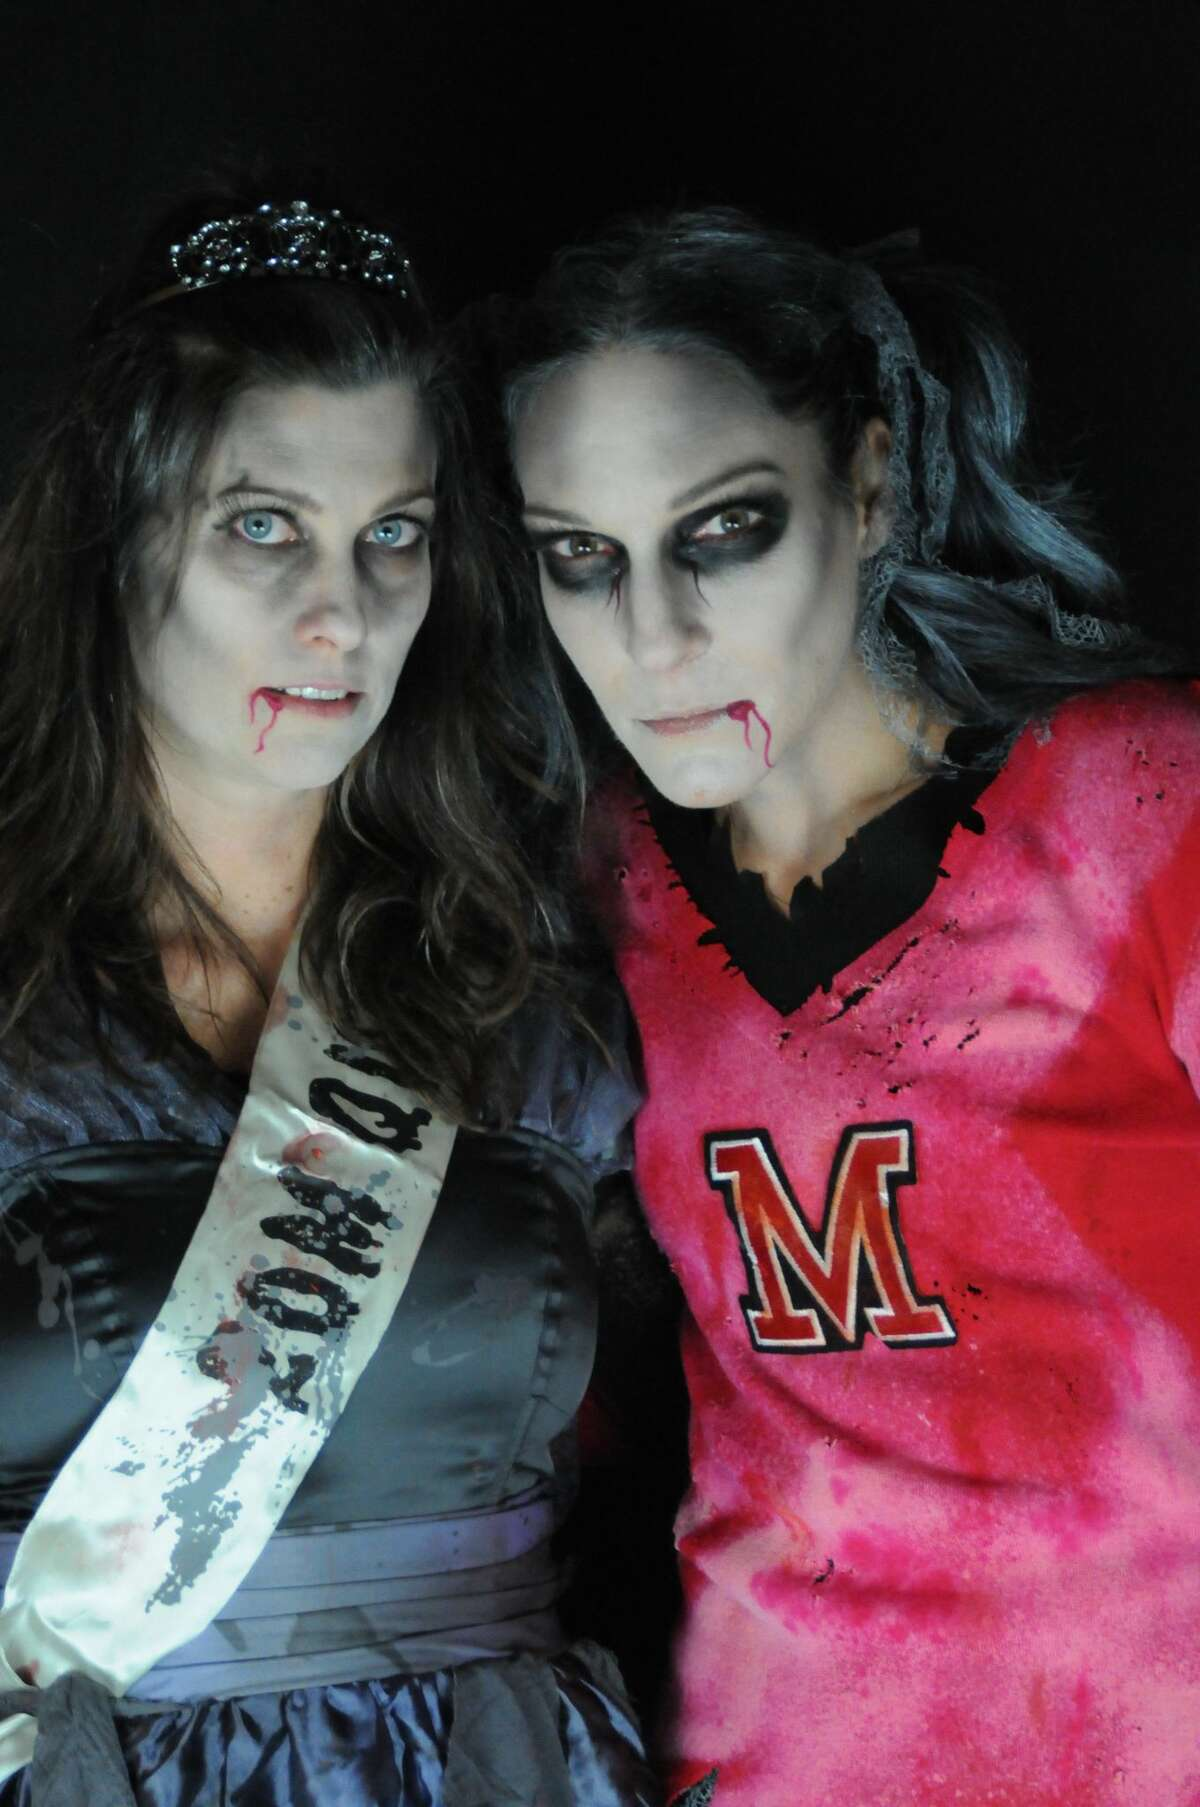 For the second year, women in Fairfield dressed as zombies performed a choreographed dance to Michael Jackson's Thriller on Halloween night 2017. The MOMbies, as they are called, raised nearly $3,000 online to benefit cancer research.